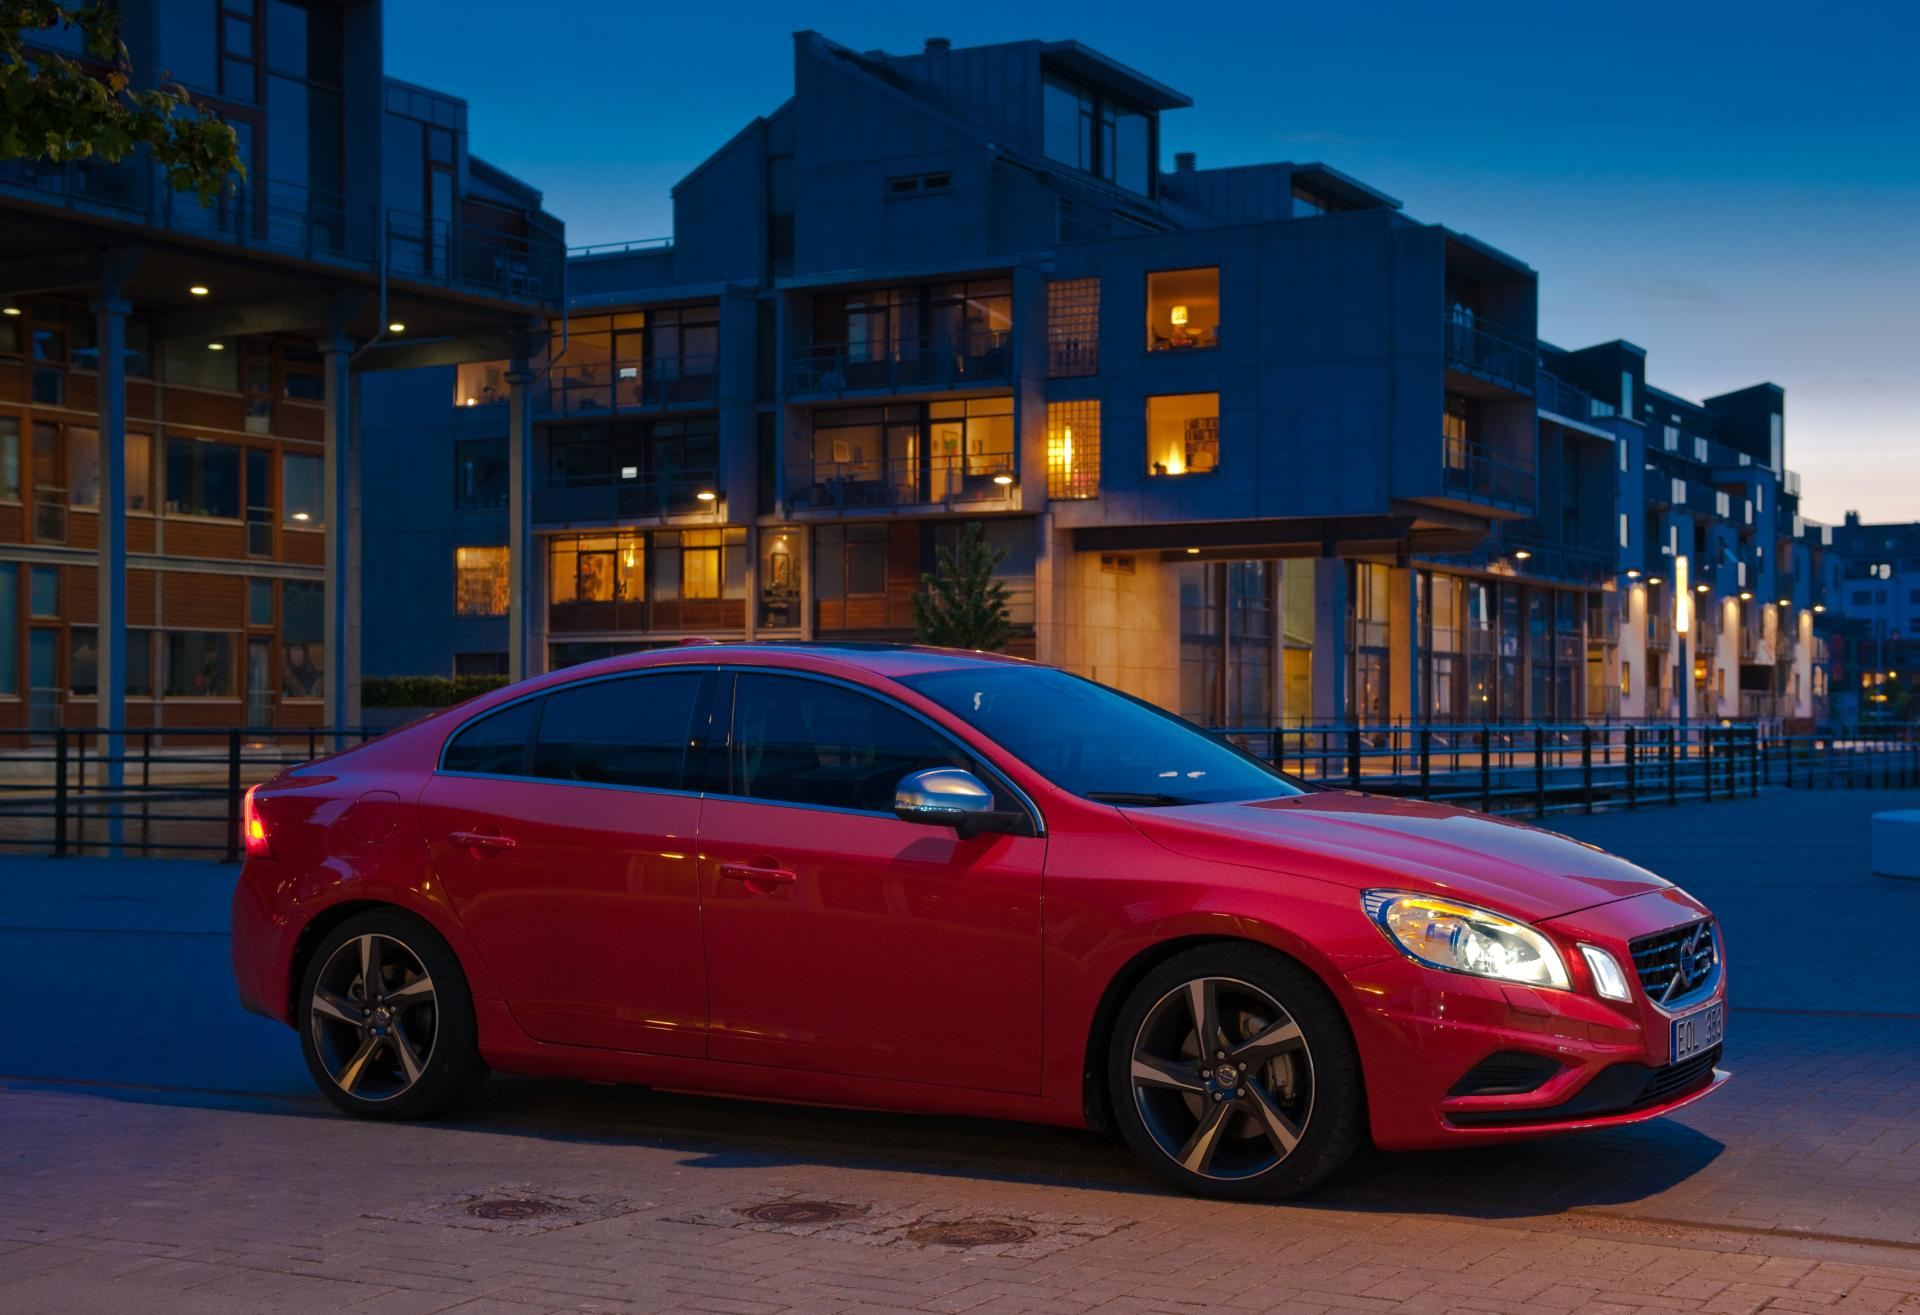 volvo s 60 2012 images #11